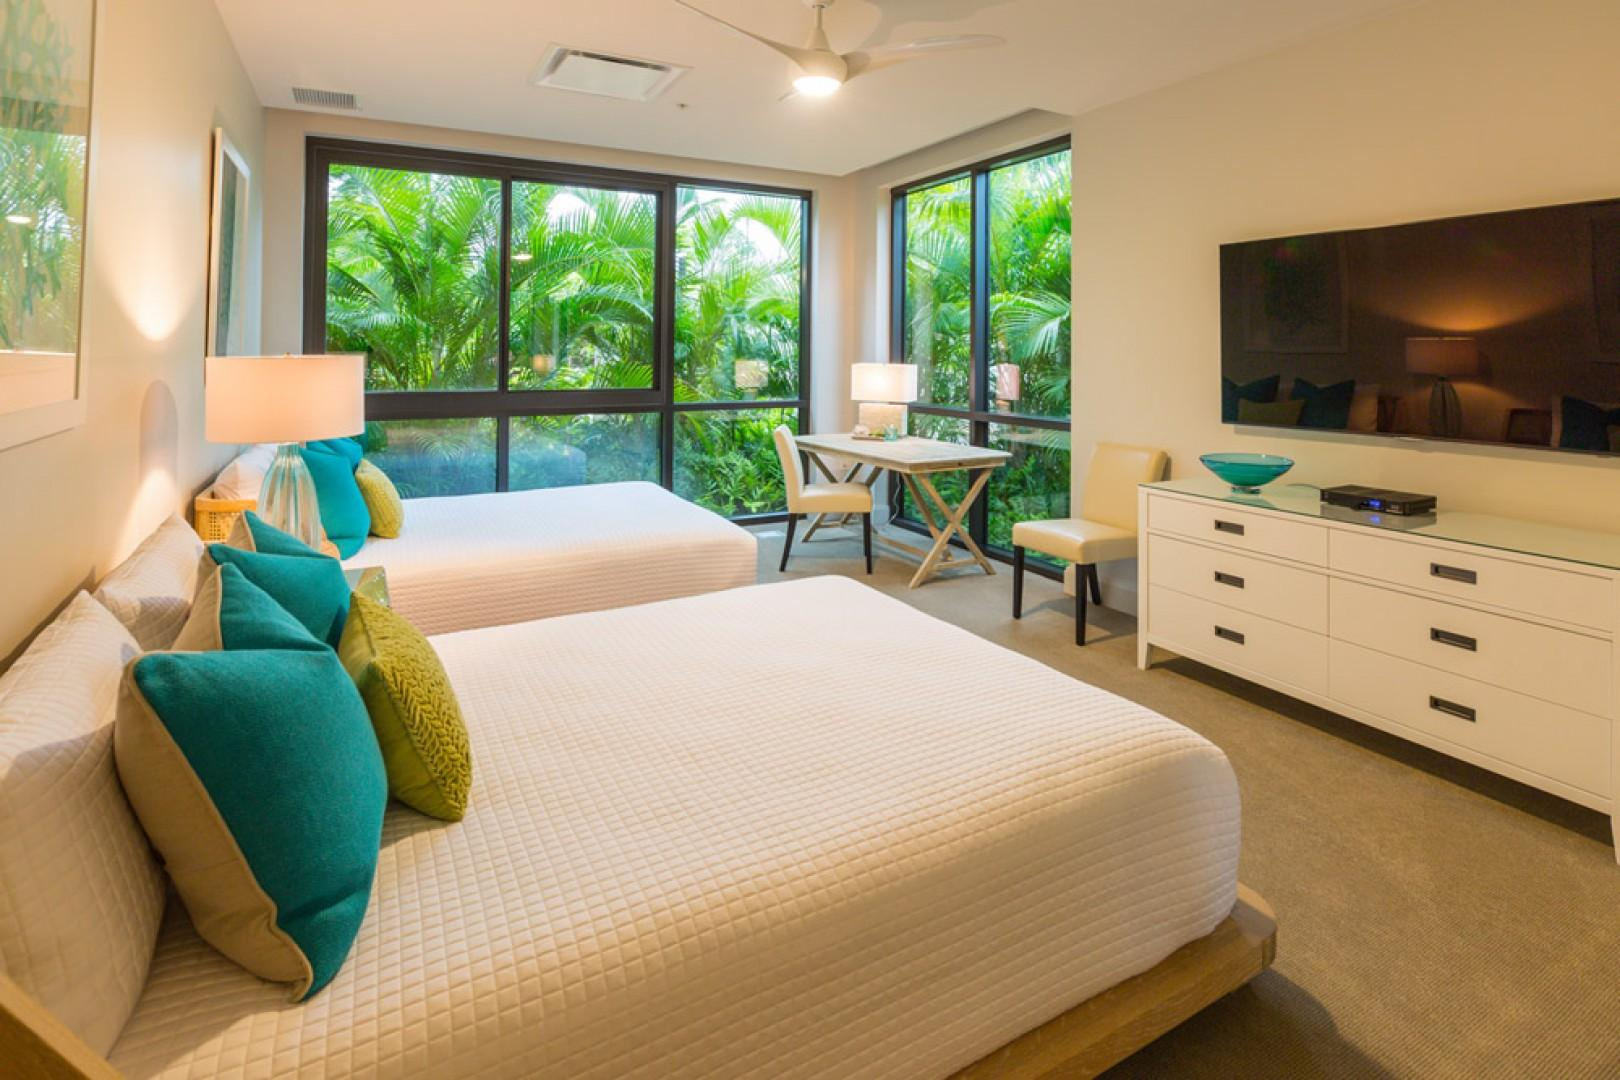 SeaGlass Villa 810 at Andaz Maui Wailea Resort - Third Bedroom Suite with Tropical Floral Garden Views, Large Flat Panel HDTV with Netflix, Two Queen Beds and En-Suite Private Bath